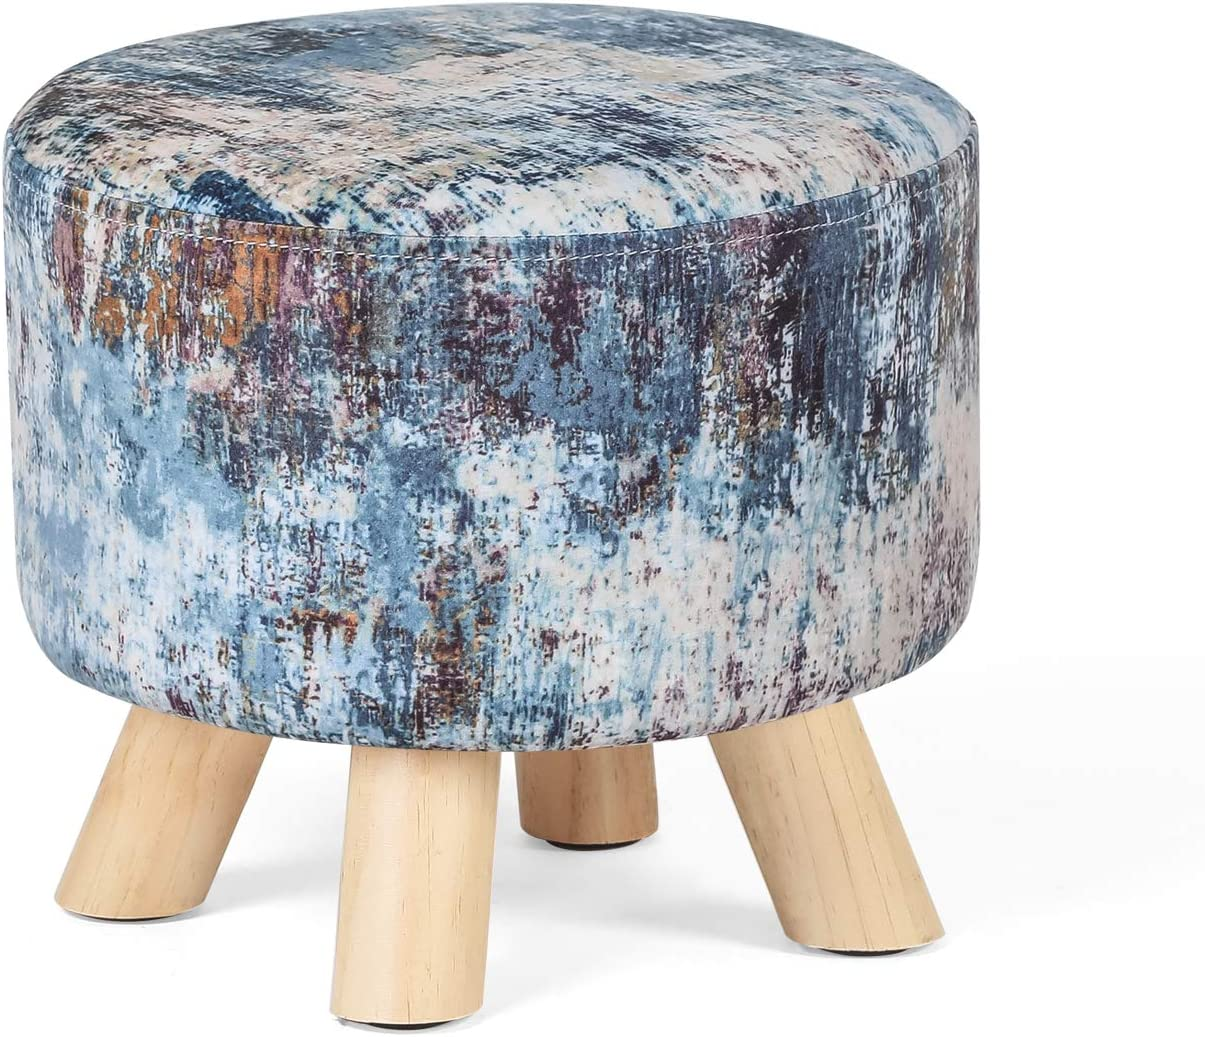 Homebeez Round Velvet Ottoman Footrest with 4 Seat Stool Padded Indianapolis Mall Super sale period limited